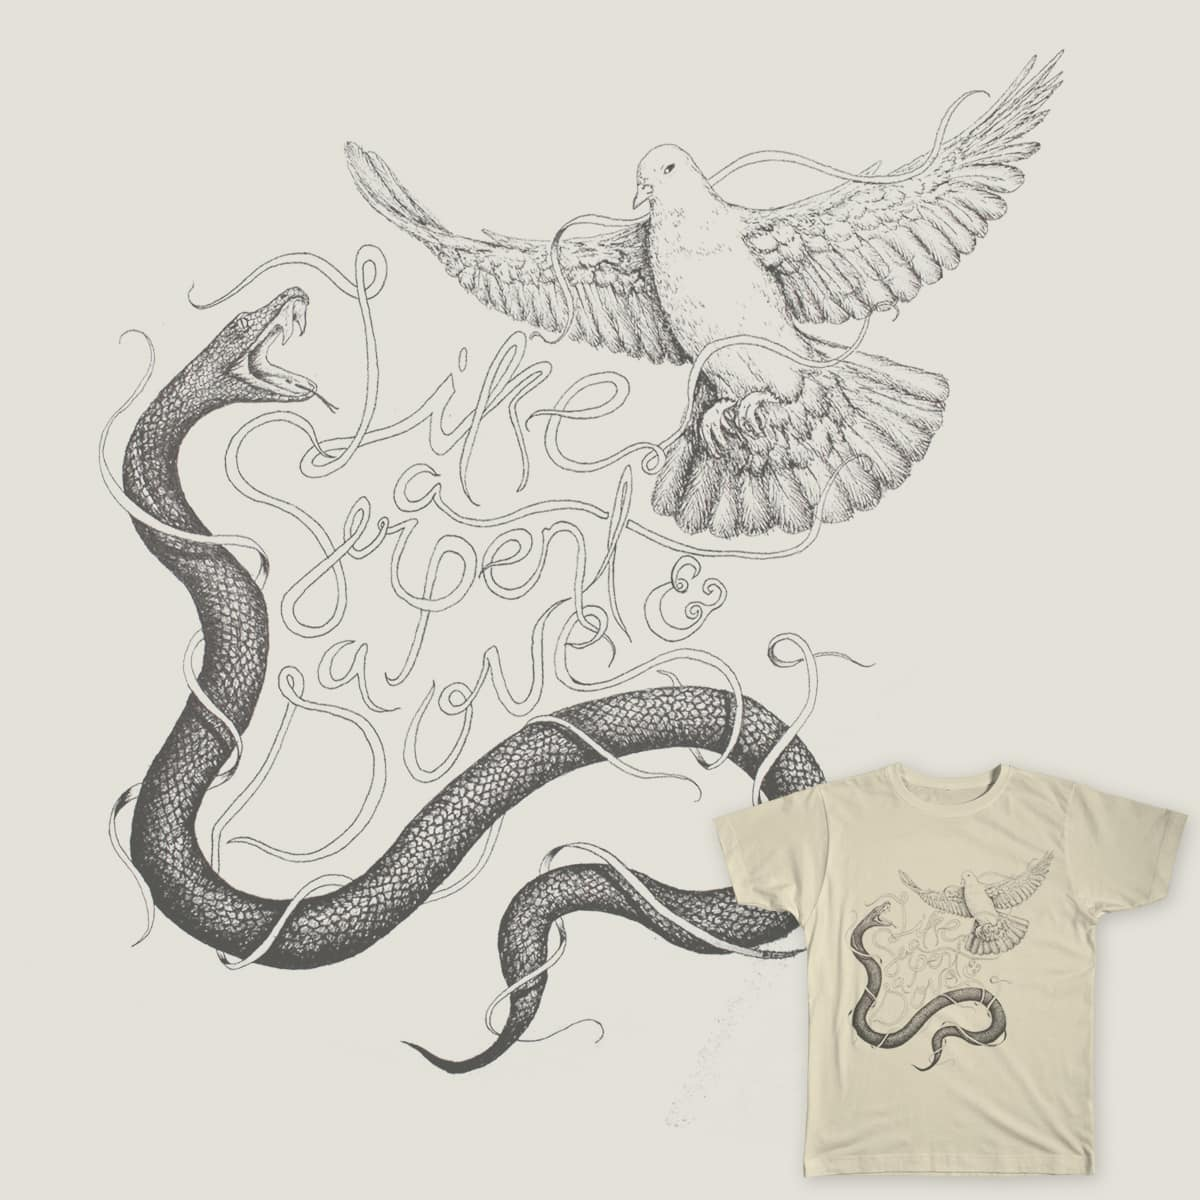 Like a serpent and a dove by Luchoardila on Threadless